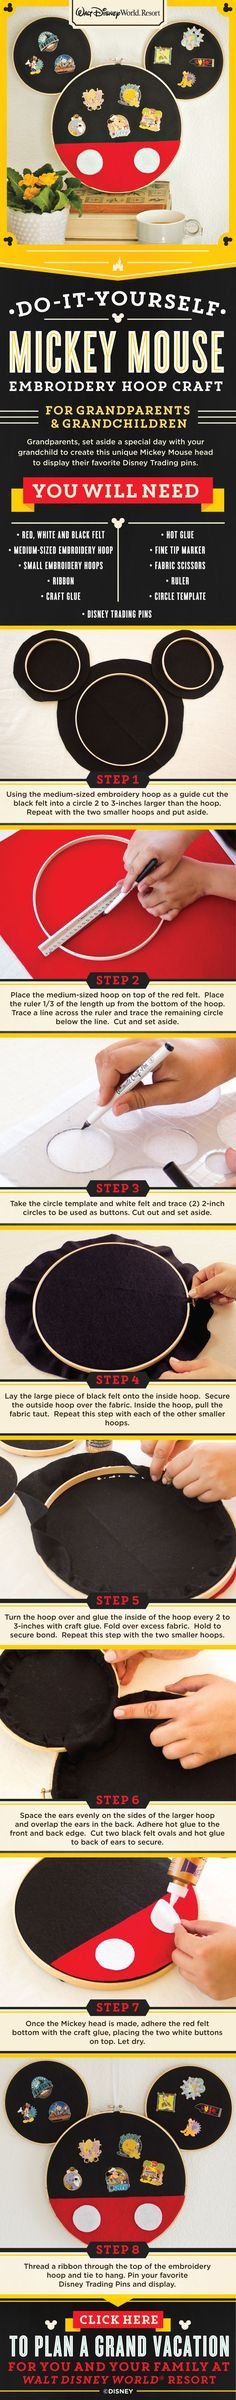 How to make a Mickey Mouse embroidery hoop craft to display your Disney Parks pins | Disney Craft | Disney DIY |